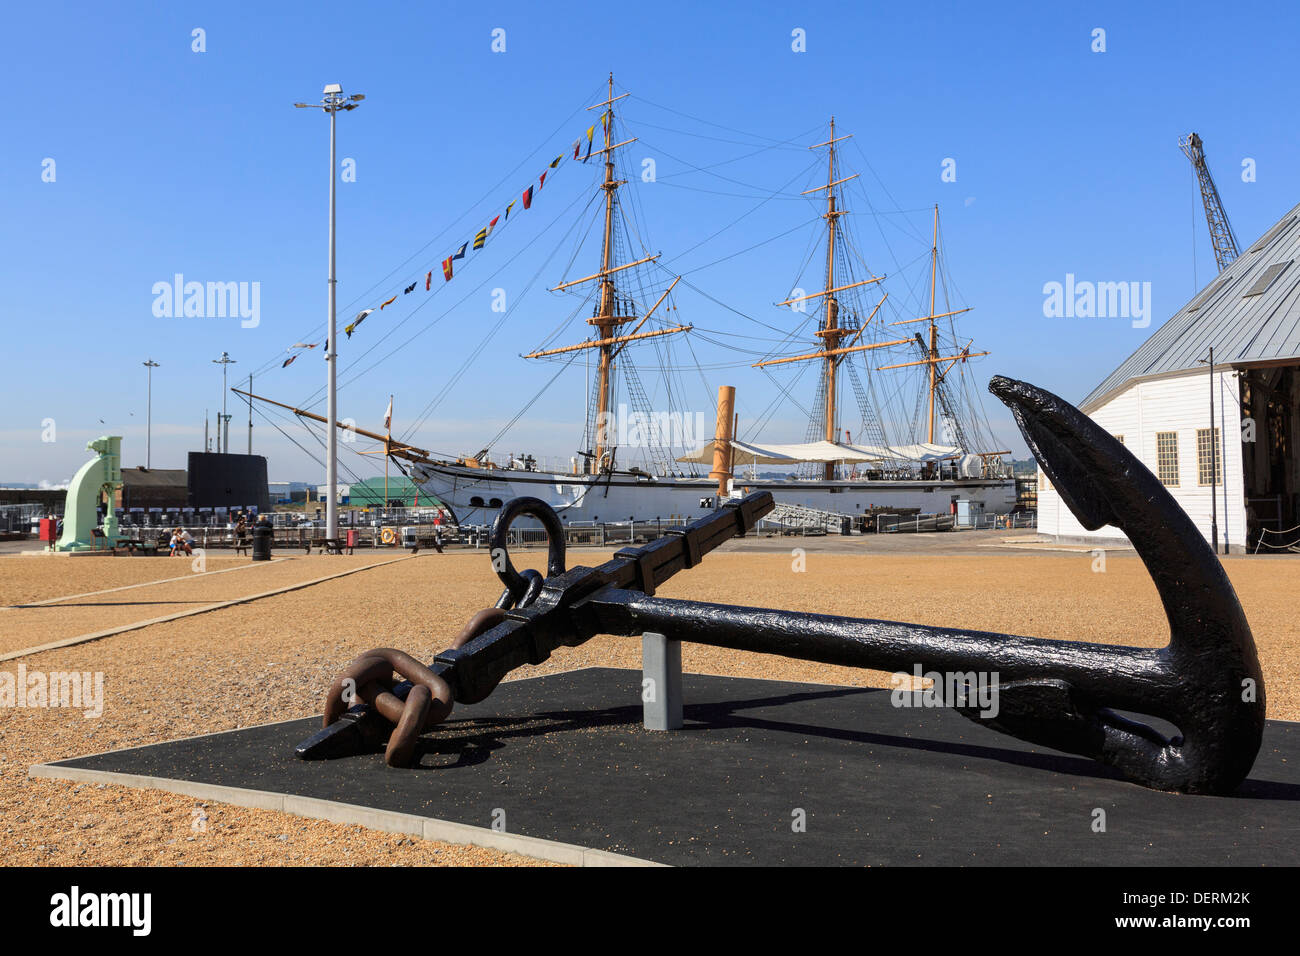 Old anchor on display in the Historic Dockyard at Chatham, Kent, England, UK, Britain - Stock Image